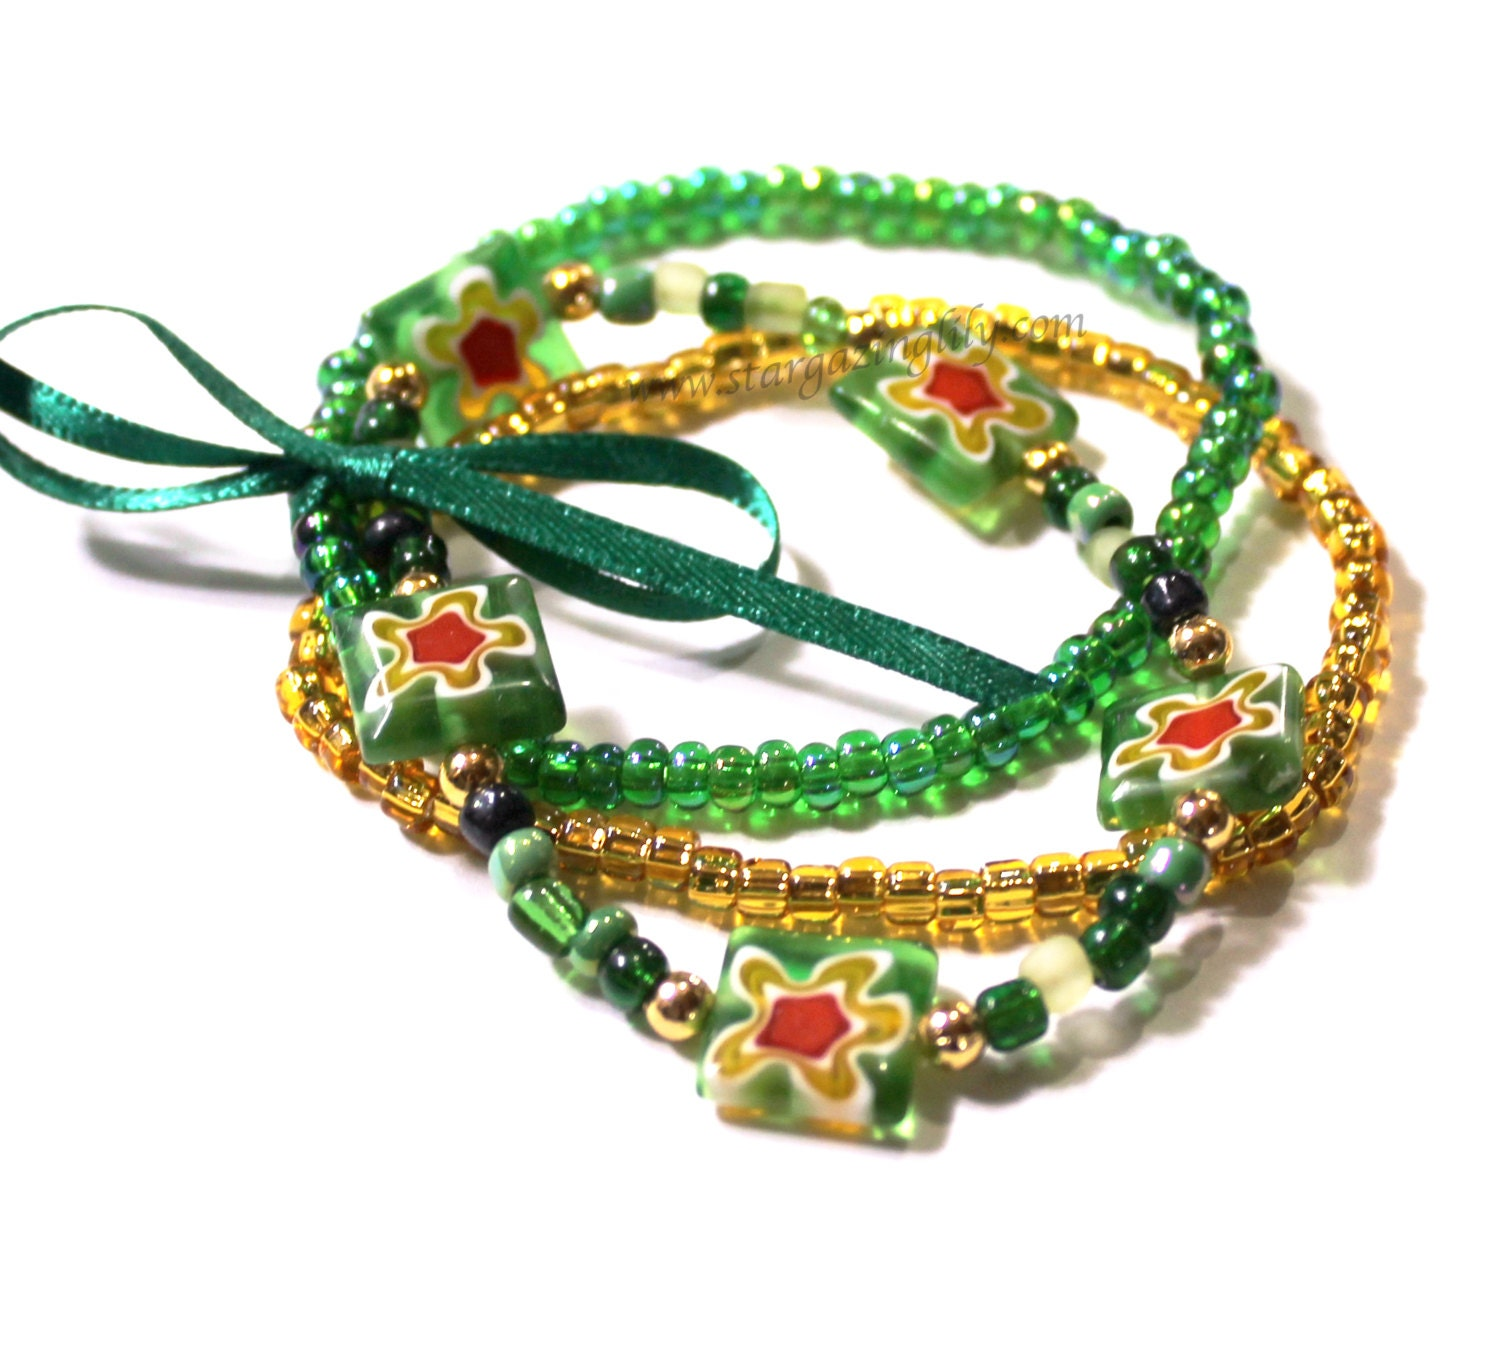 St patrick 39 s day jewelry green milliefiori beads with for Same day jewelry repair